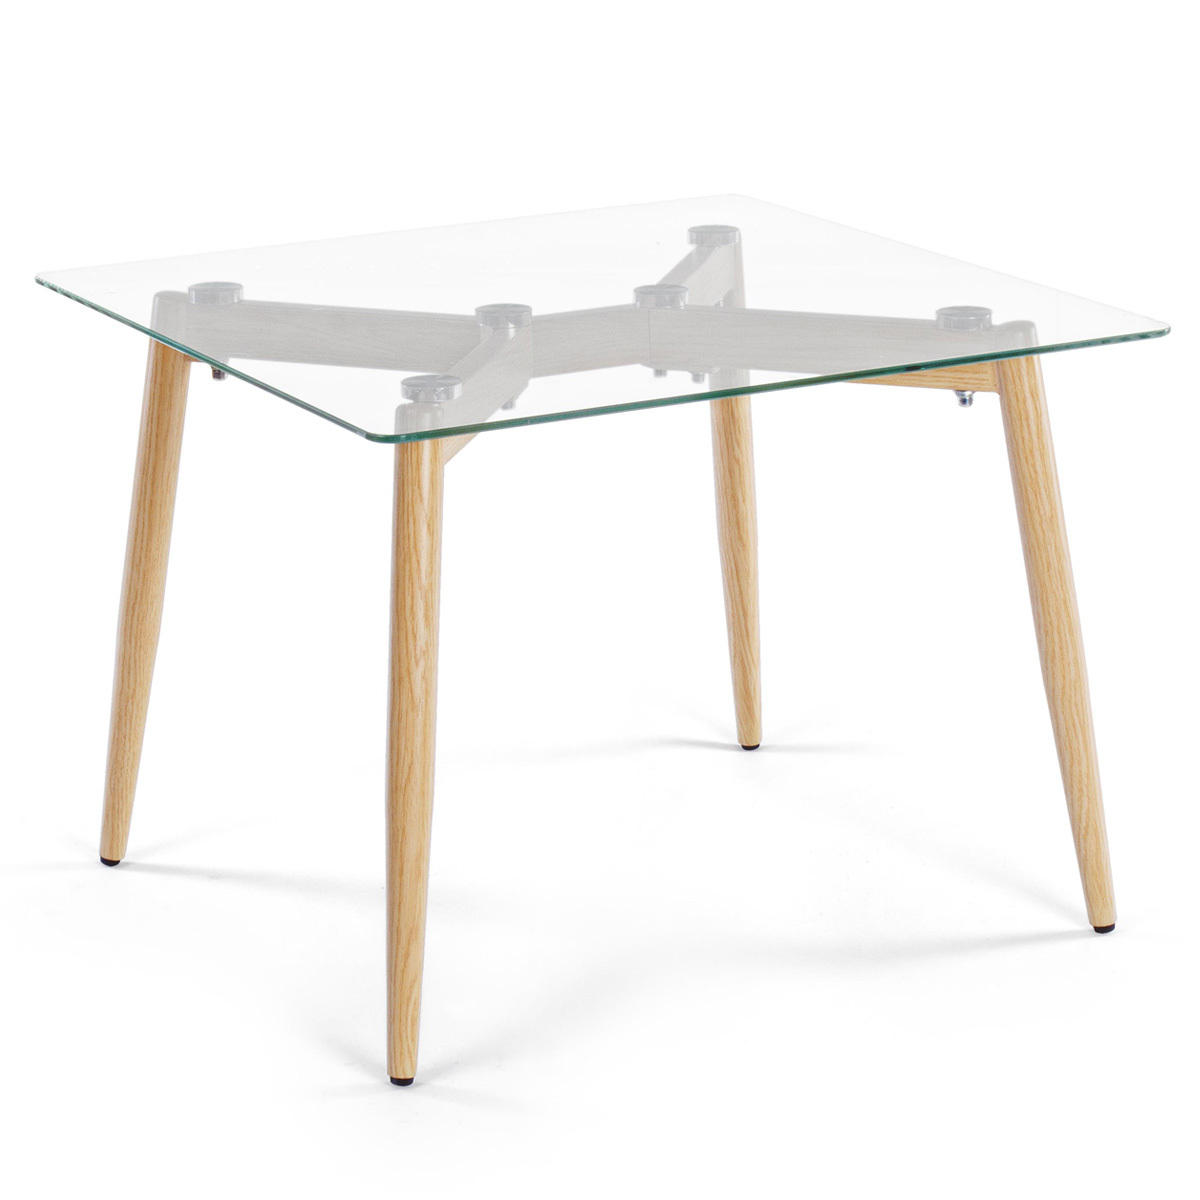 Photos 1: Bizzotto Metal and glass coffee table 60 x 60 0730795